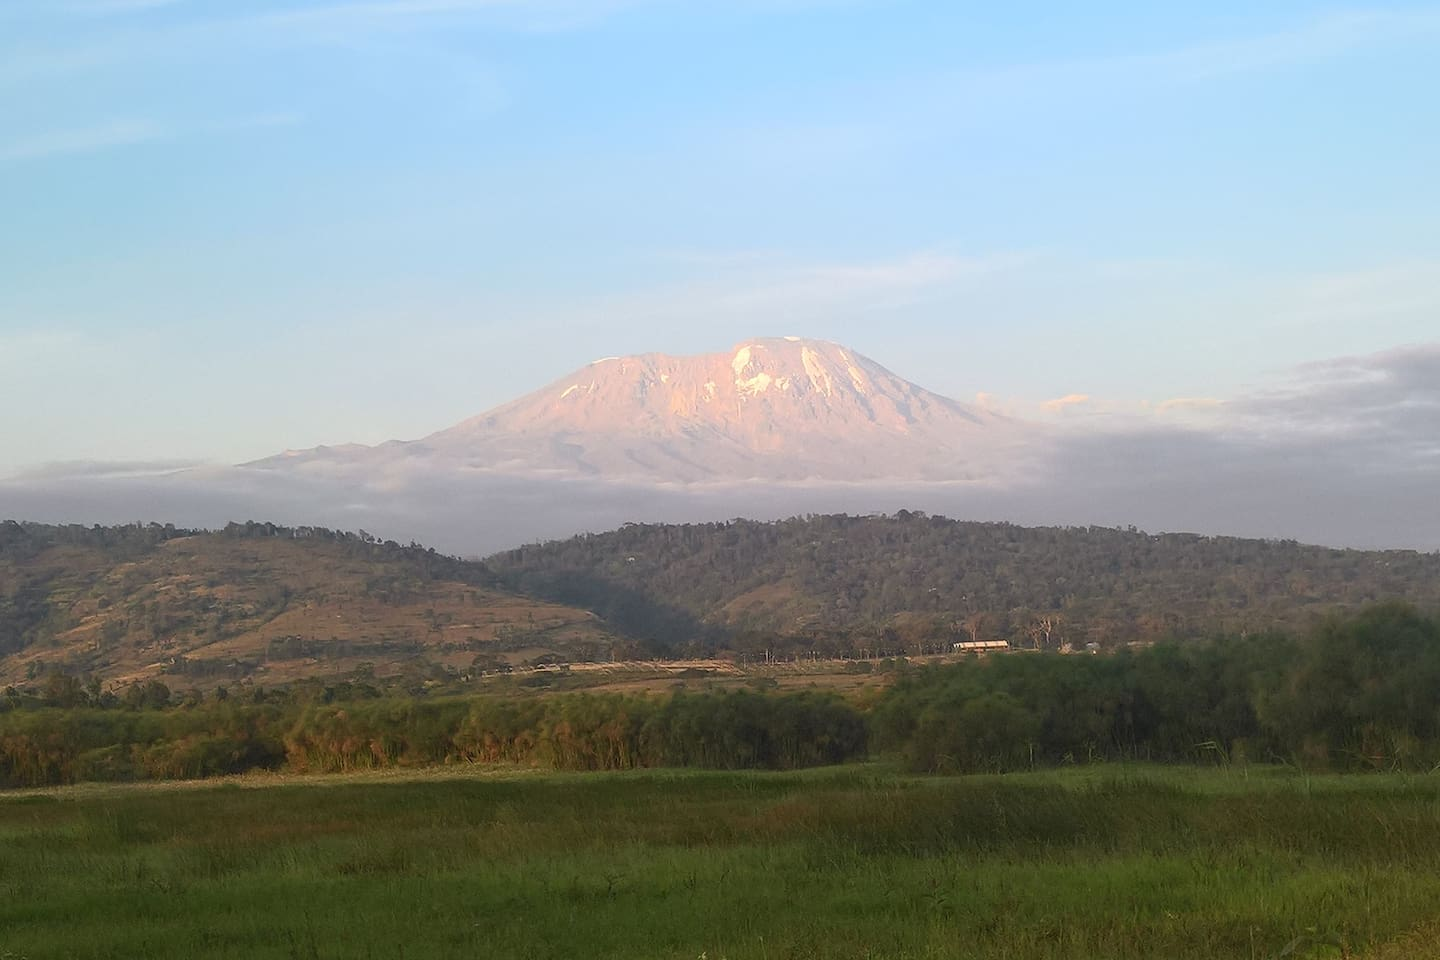 View of Mount Kilimanjaro from the front of the house